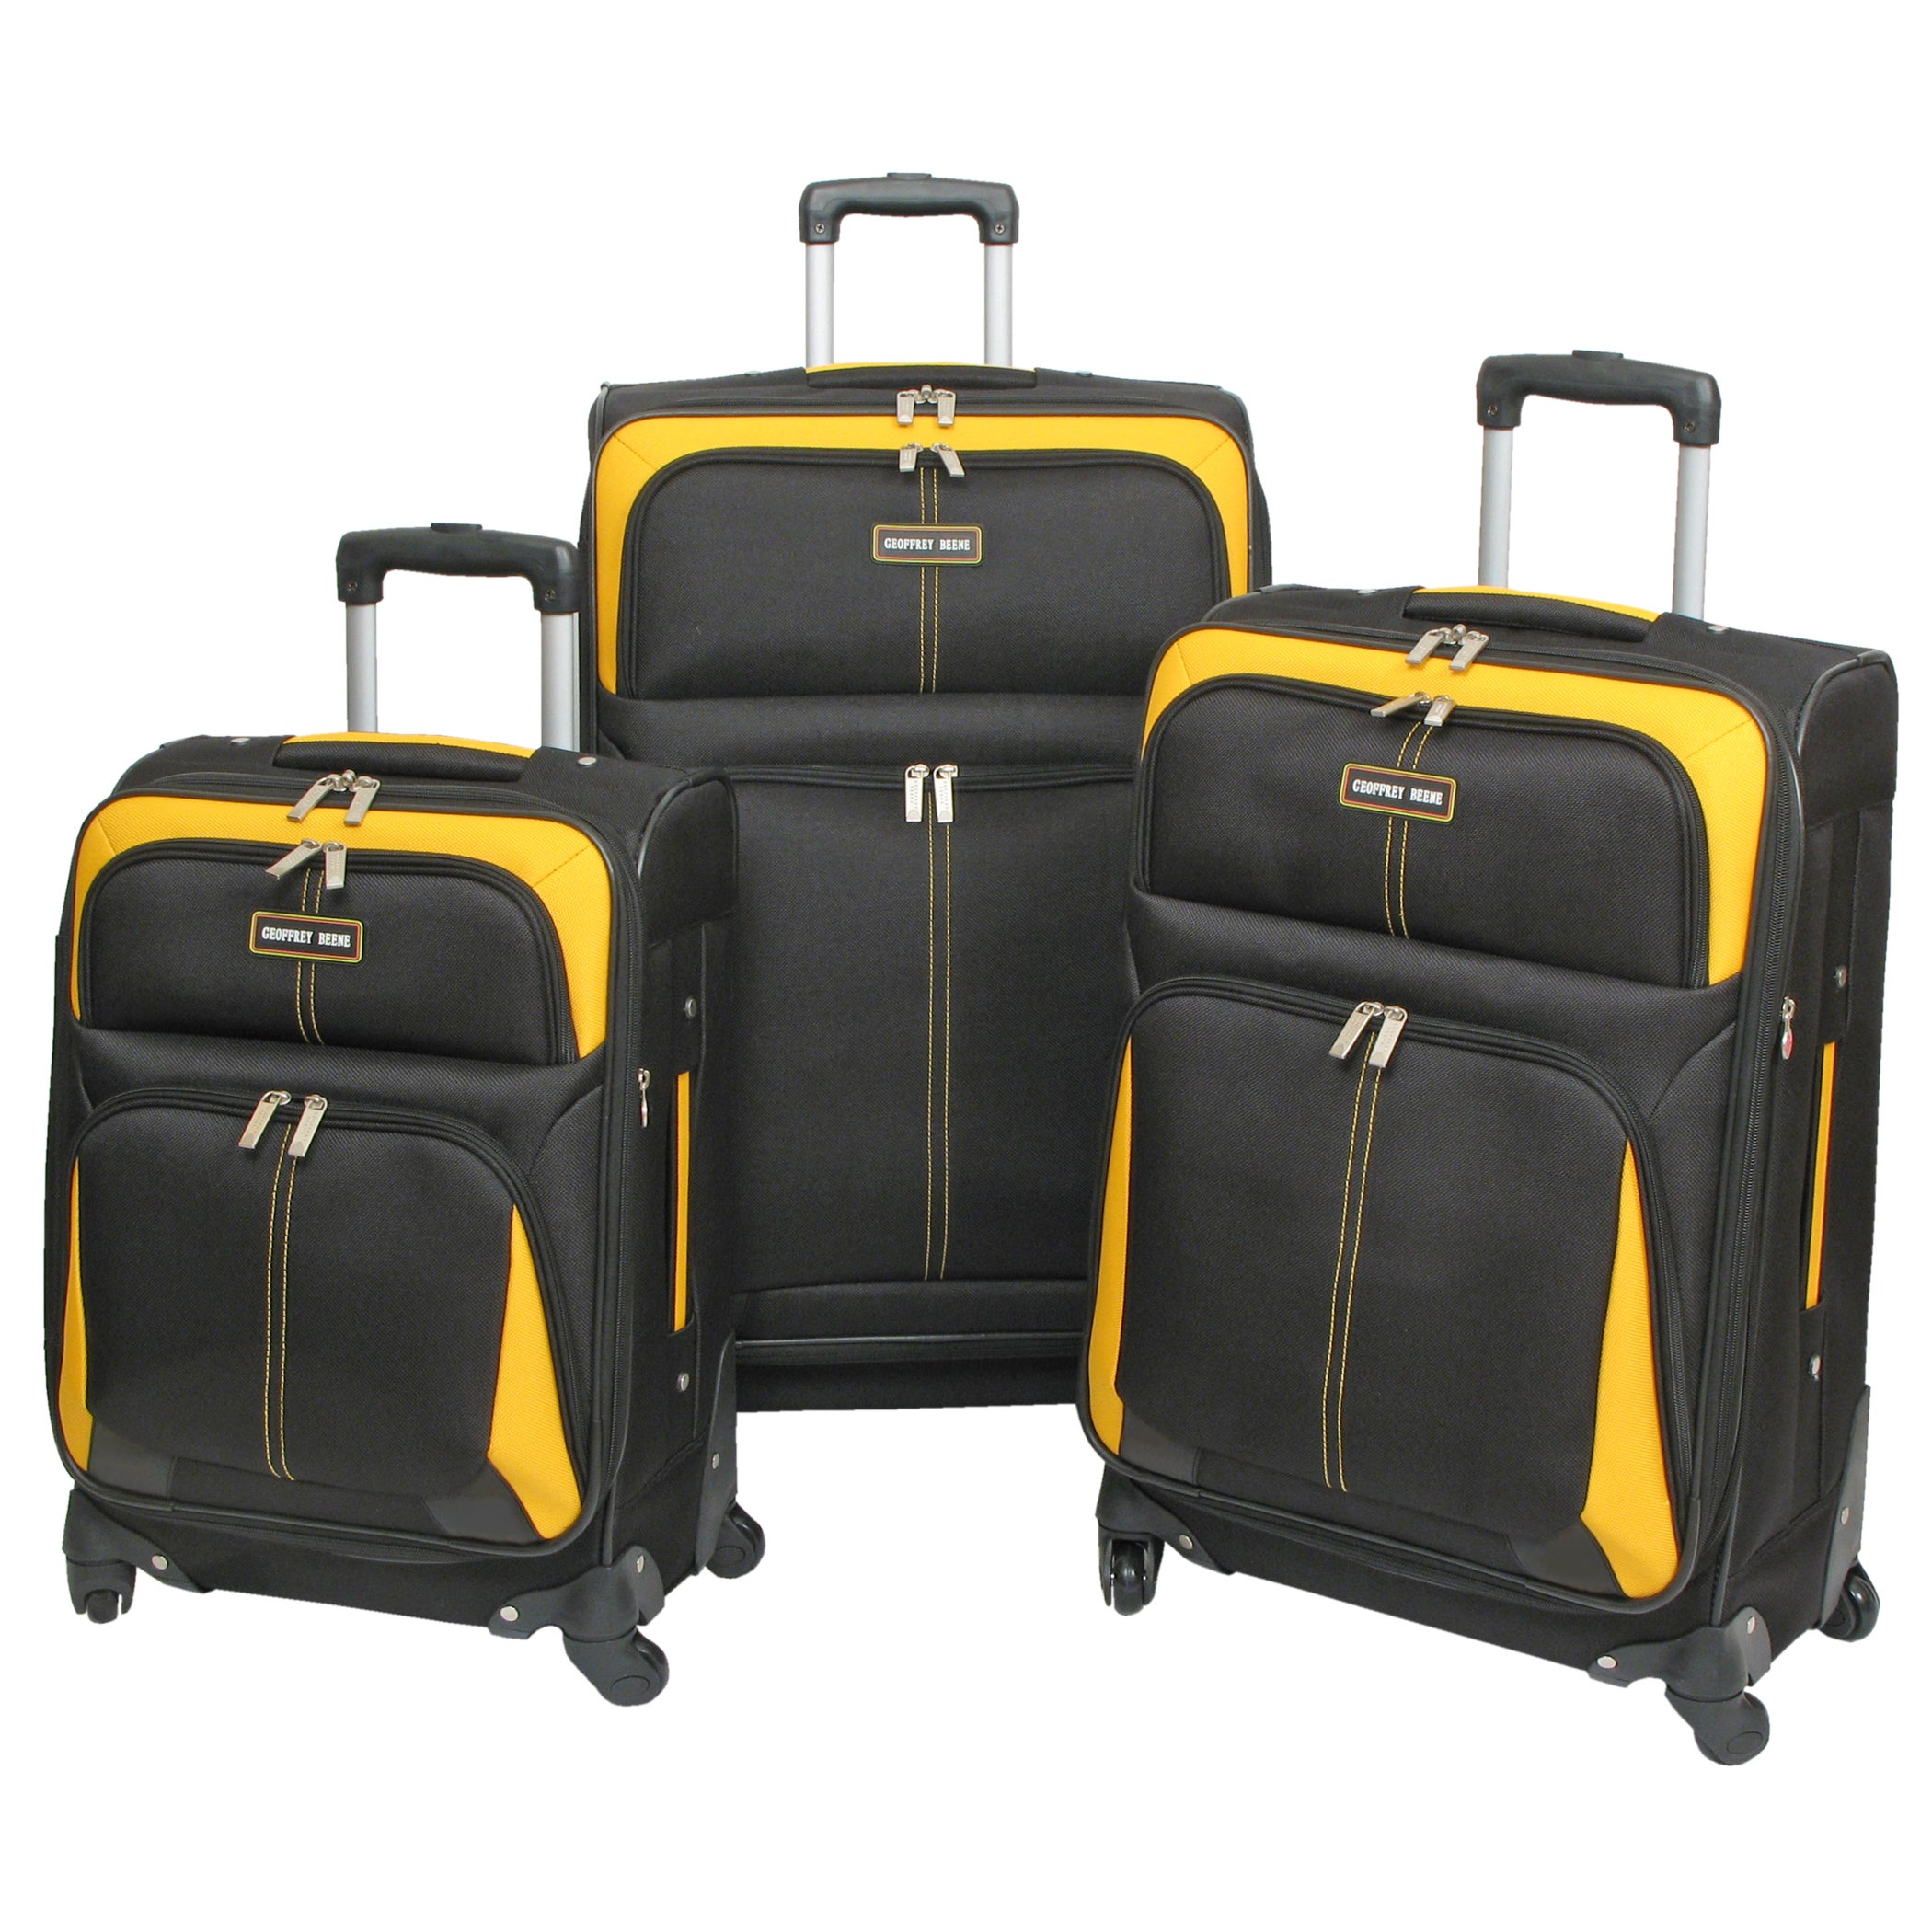 Overstock.com Geoffrey Beene Golden Gate 3-piece Spinner Luggage Set